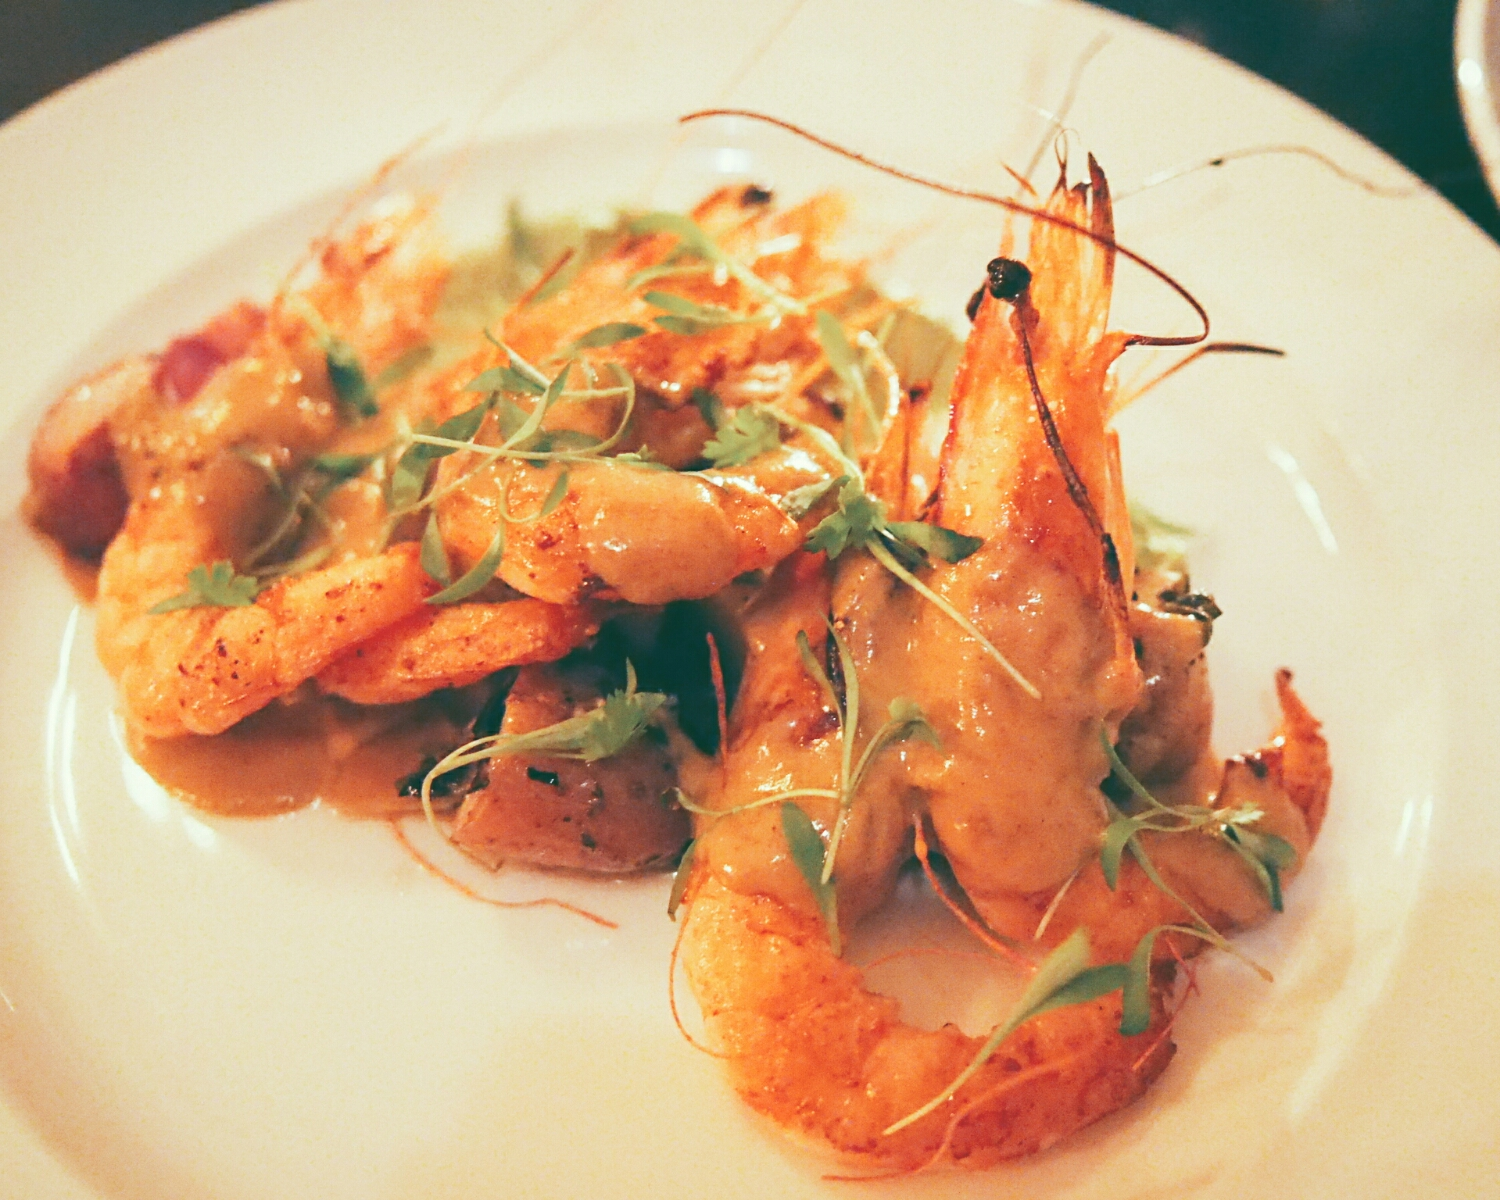 caledonia salt prawns  with charred spring onion, fingerling potato, avocado puree, crispy bacon, bisque cream.